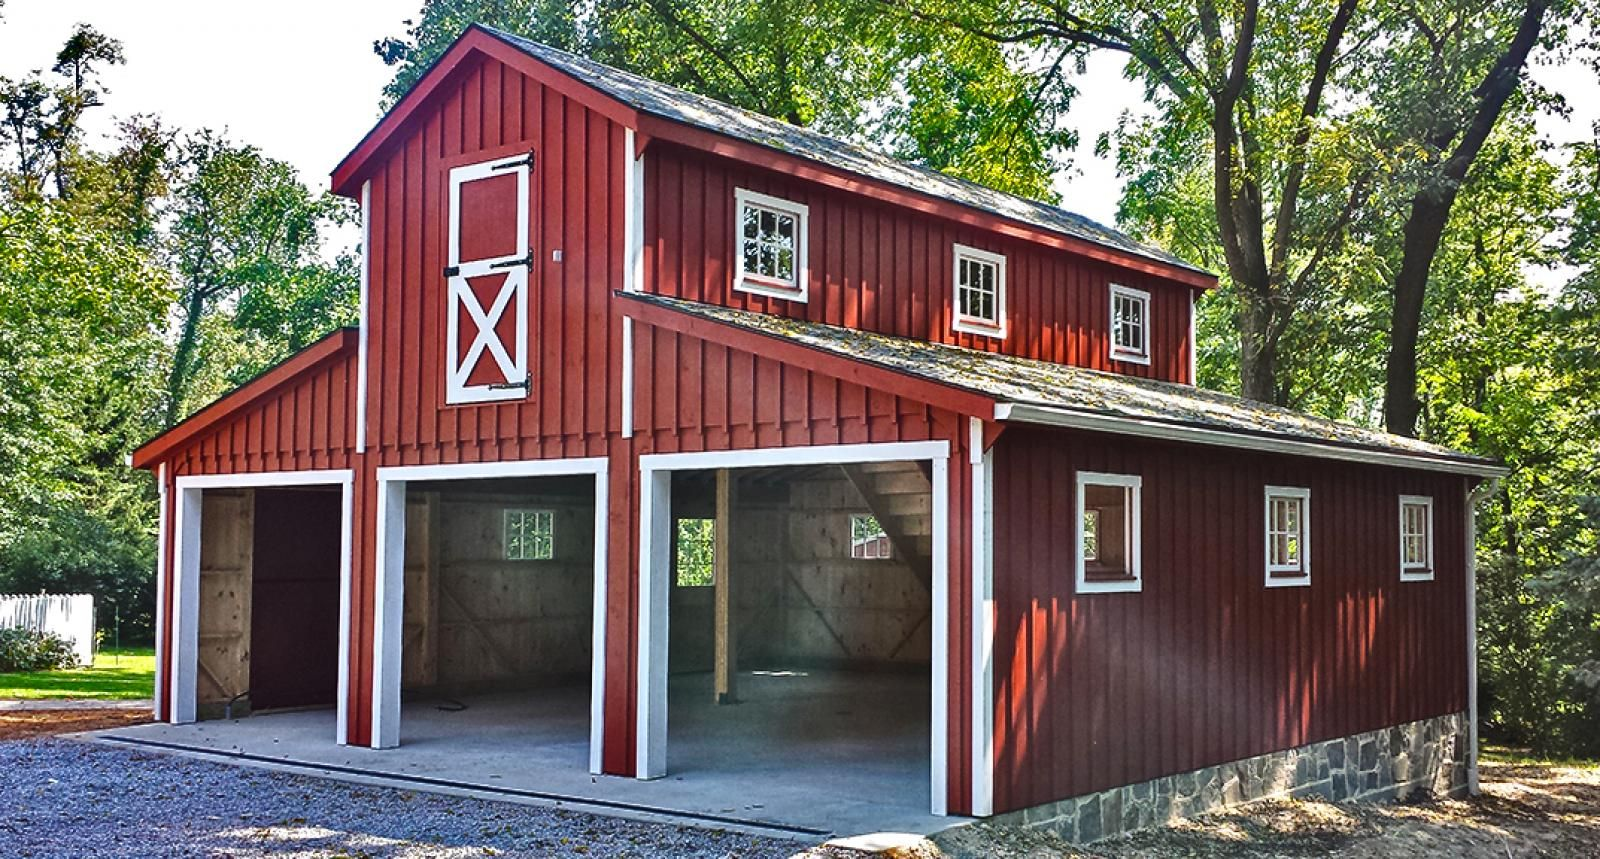 barn design more horses need a parallel stall arrangement small horse barns barn and horse barns - Horse Stall Design Ideas